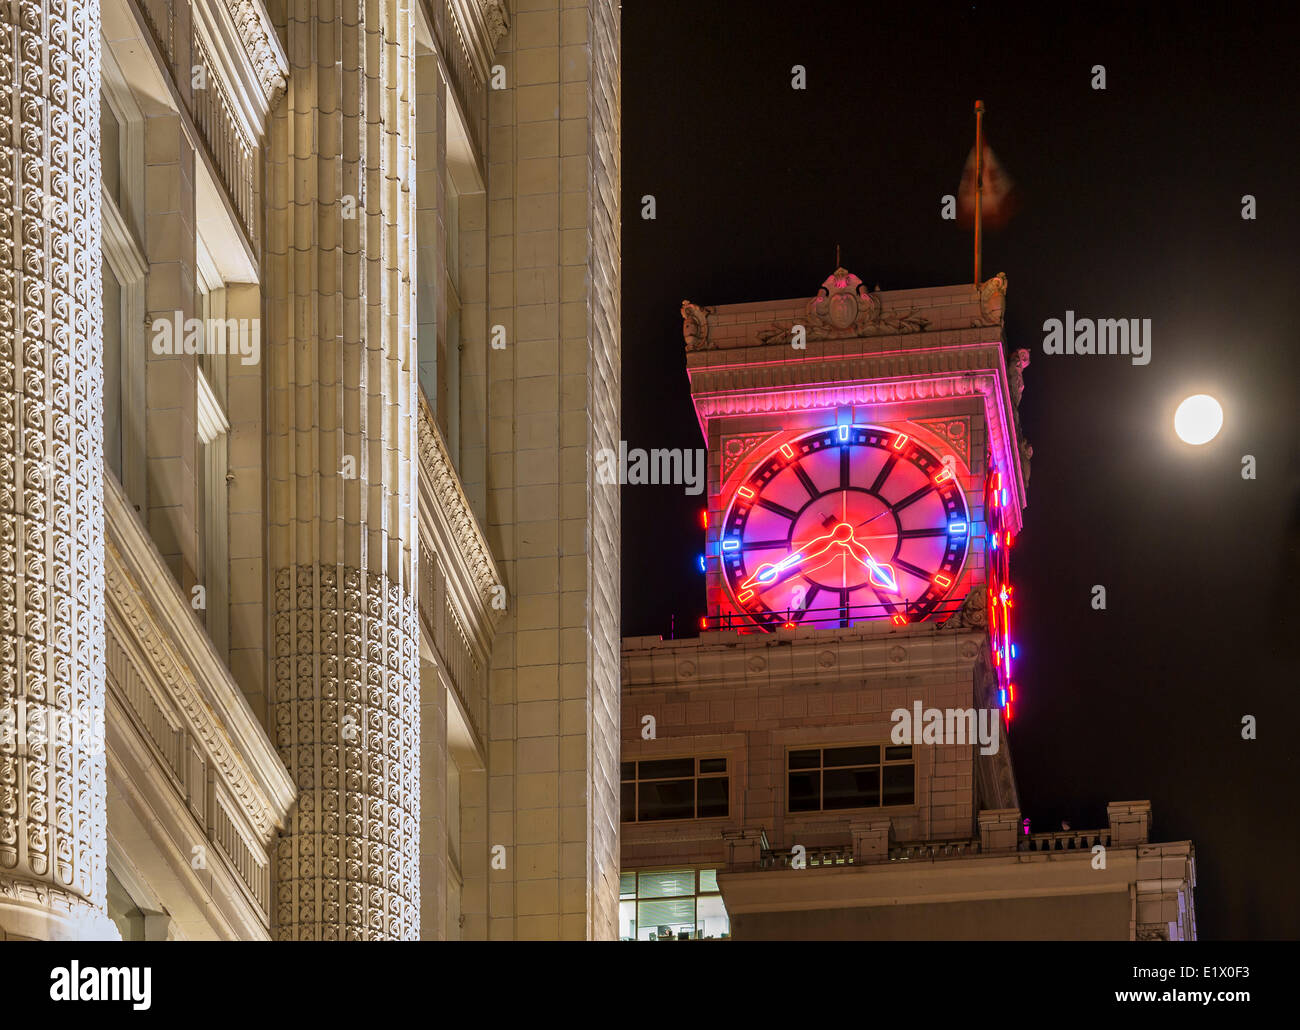 Vancouver Block Clock Tower and Hudson's Bay Building at night with 3/4 moon, Vancouver, British Columbia, Canada - Stock Image